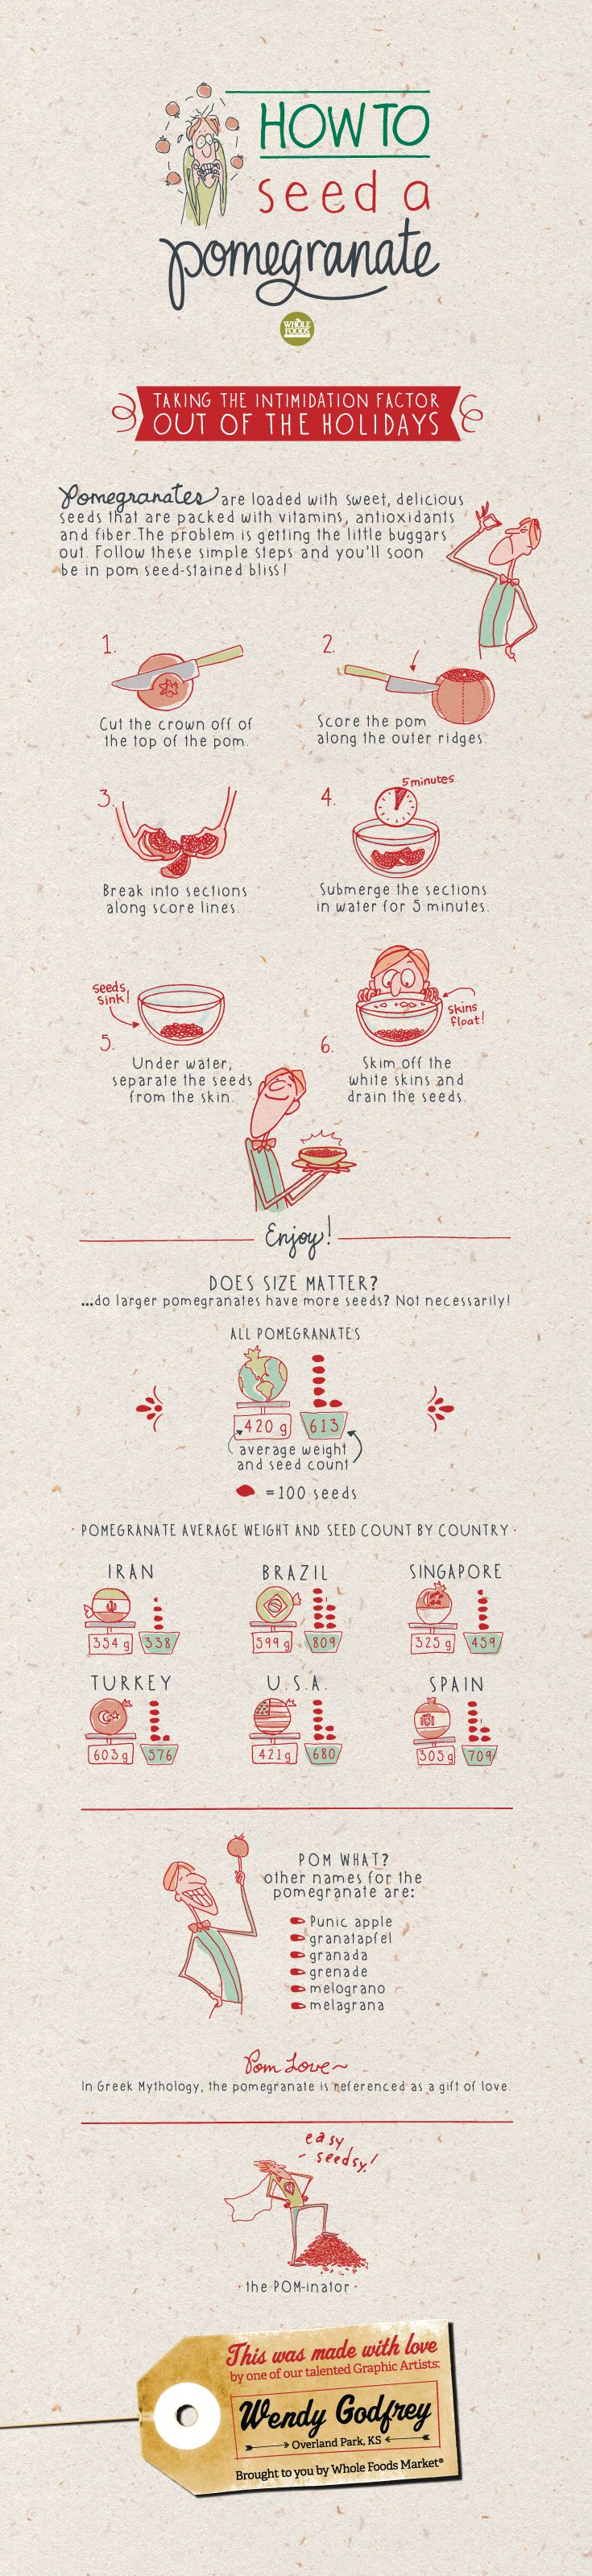 Don't be intimidated by pomegranates! #holiday #infographic